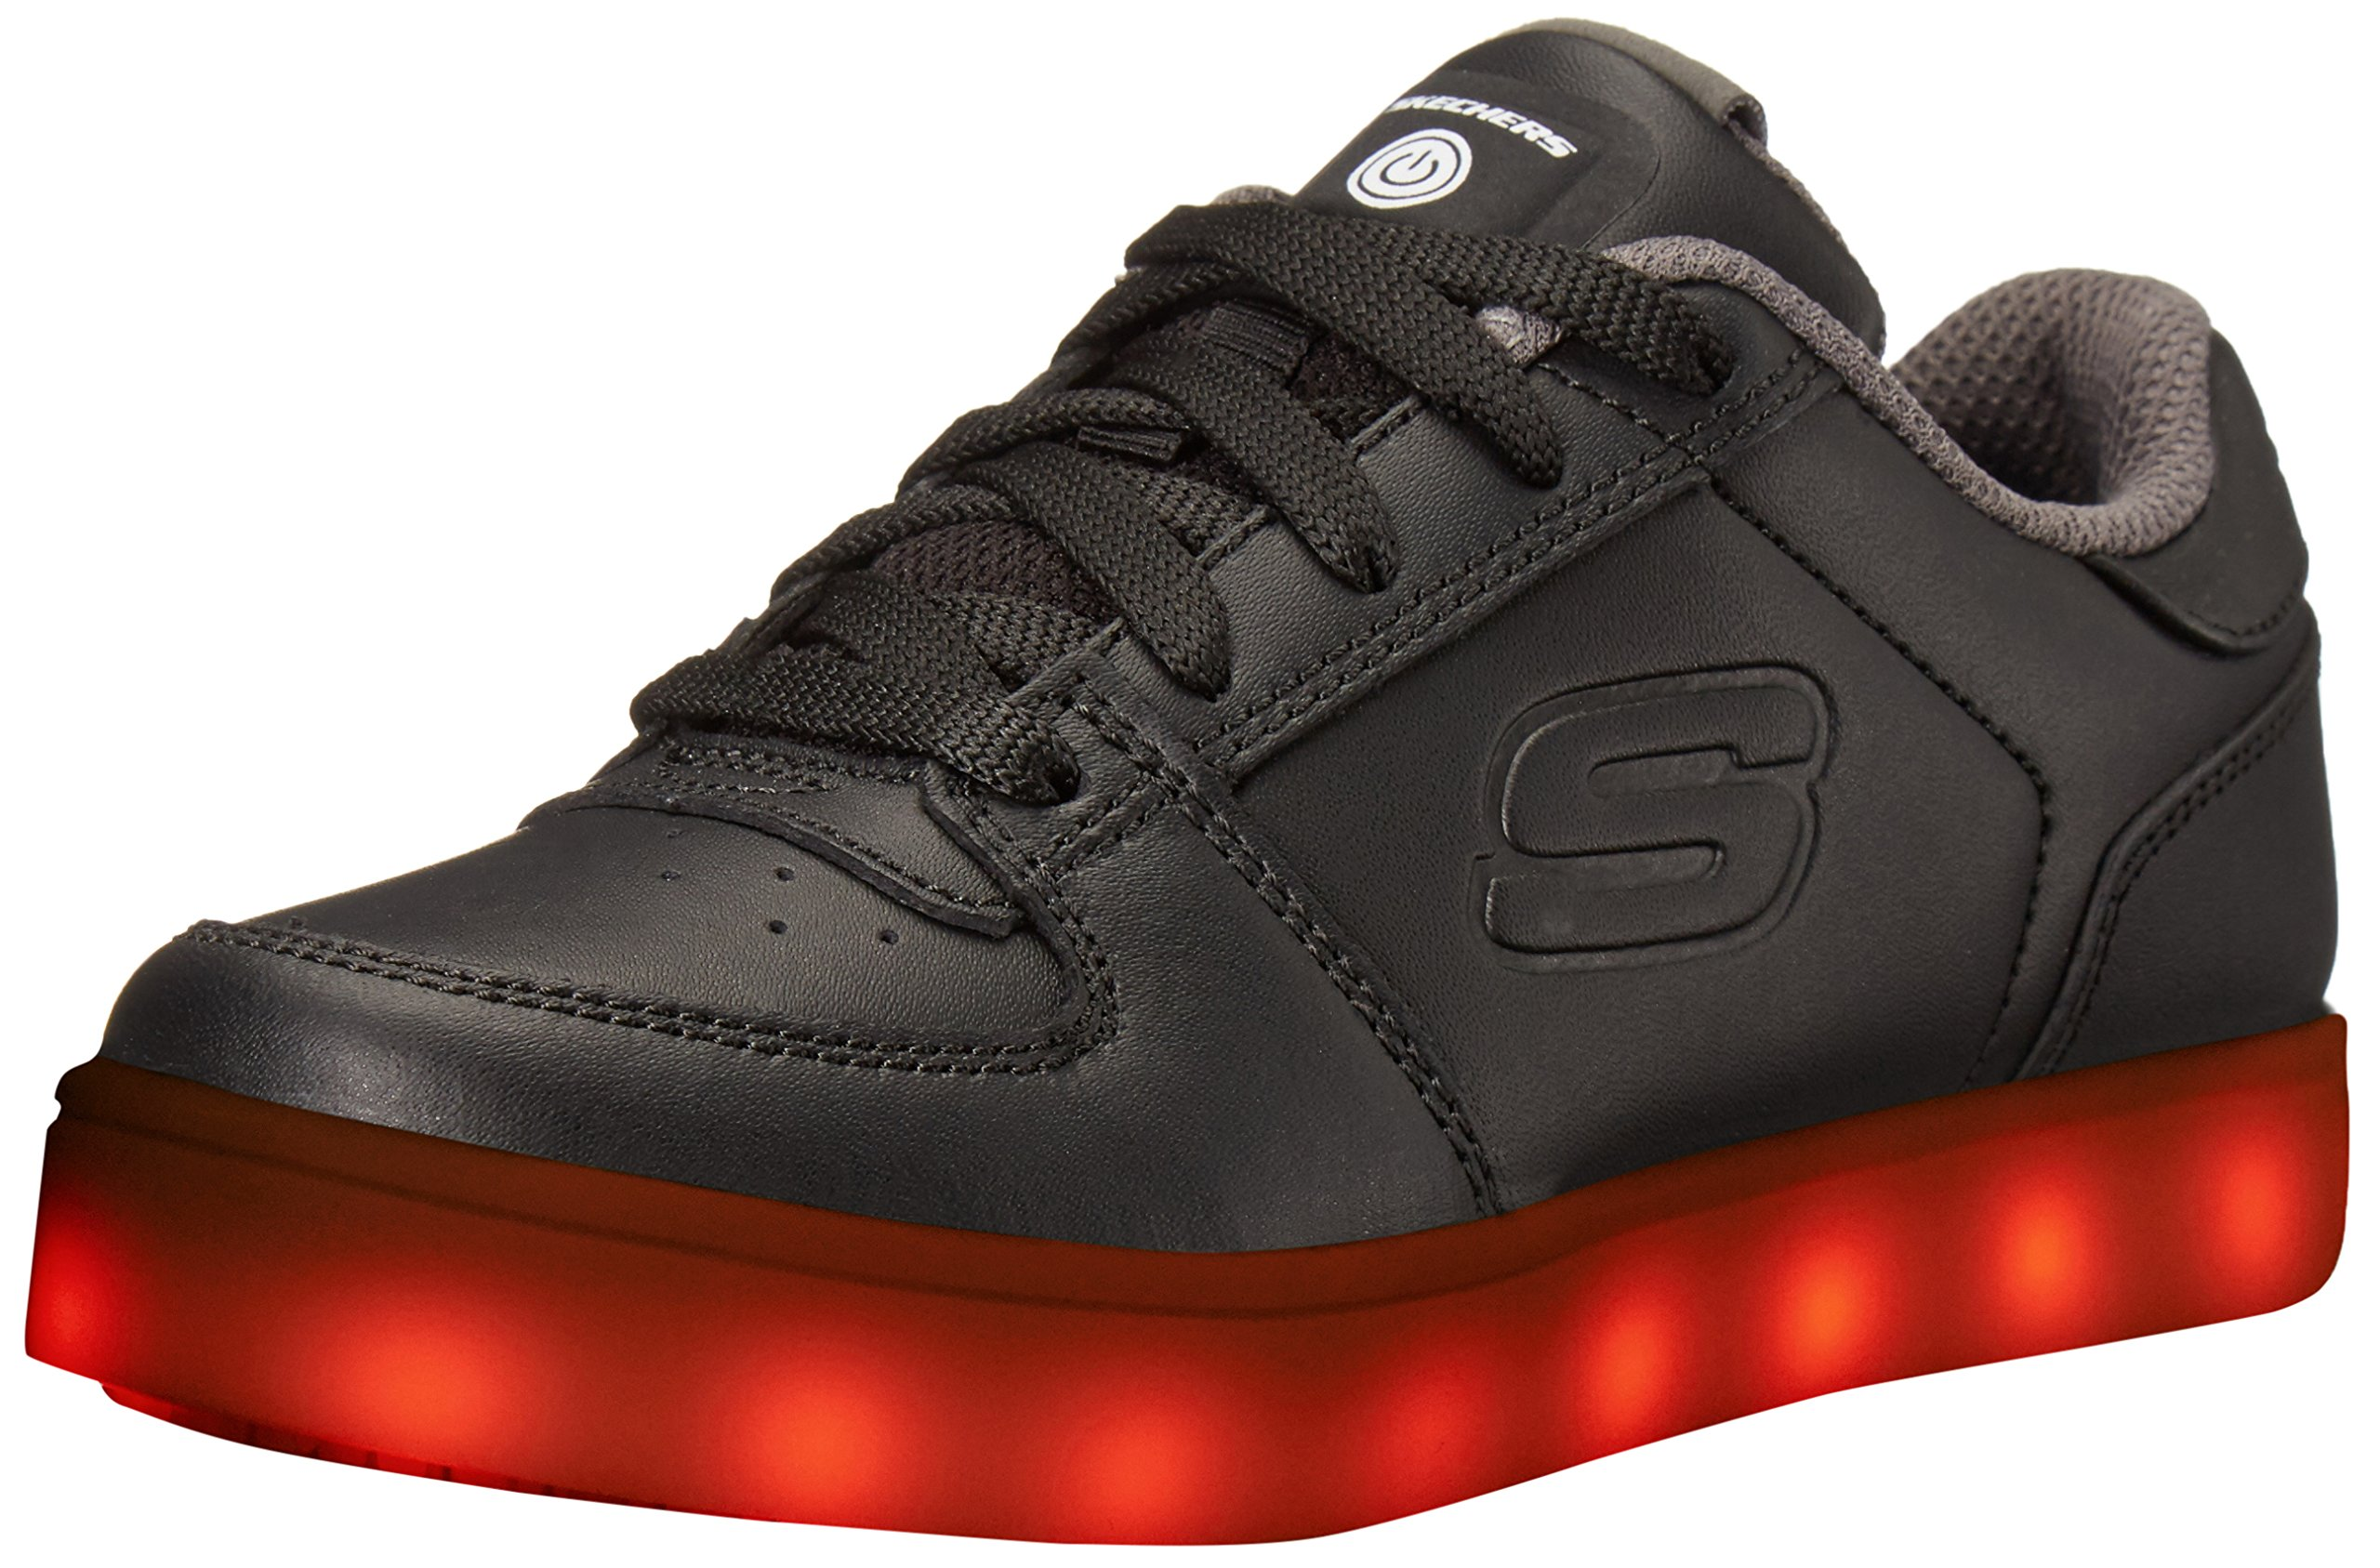 Unisex Skechers Energy Lights Elate Light Up Shoes Lace Up